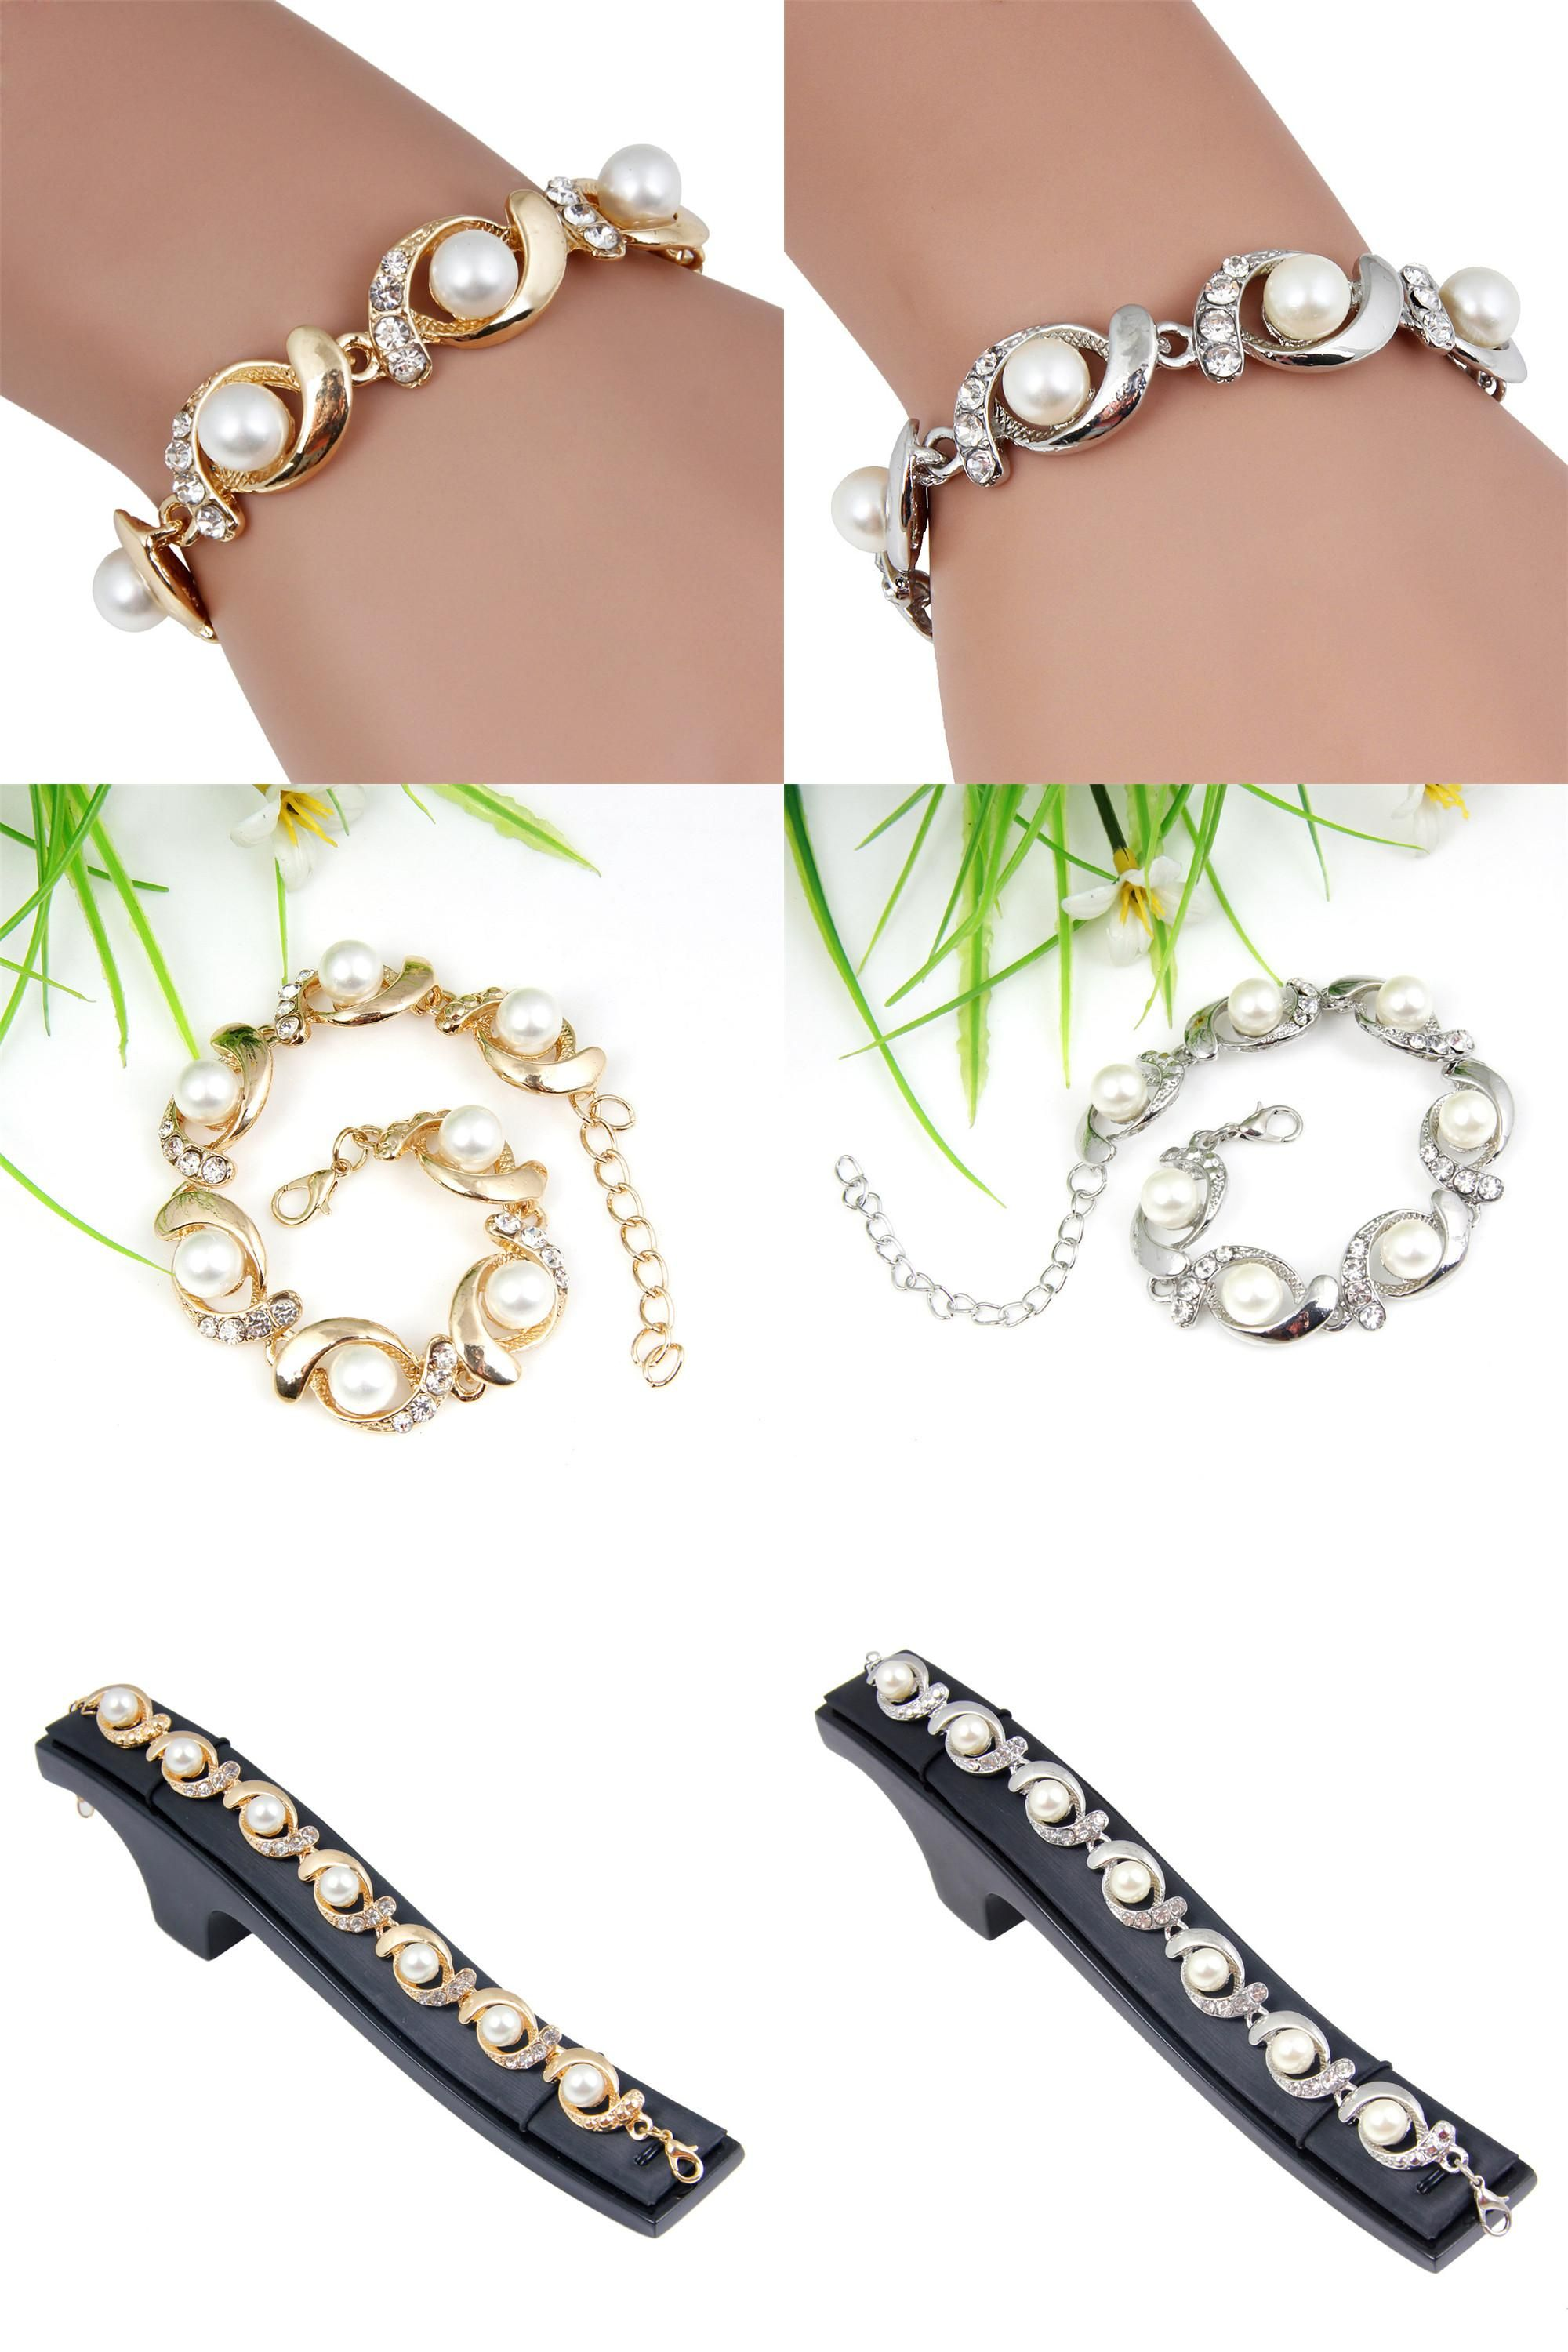 Visit to buy fashion elegant women lady gold silver imitation